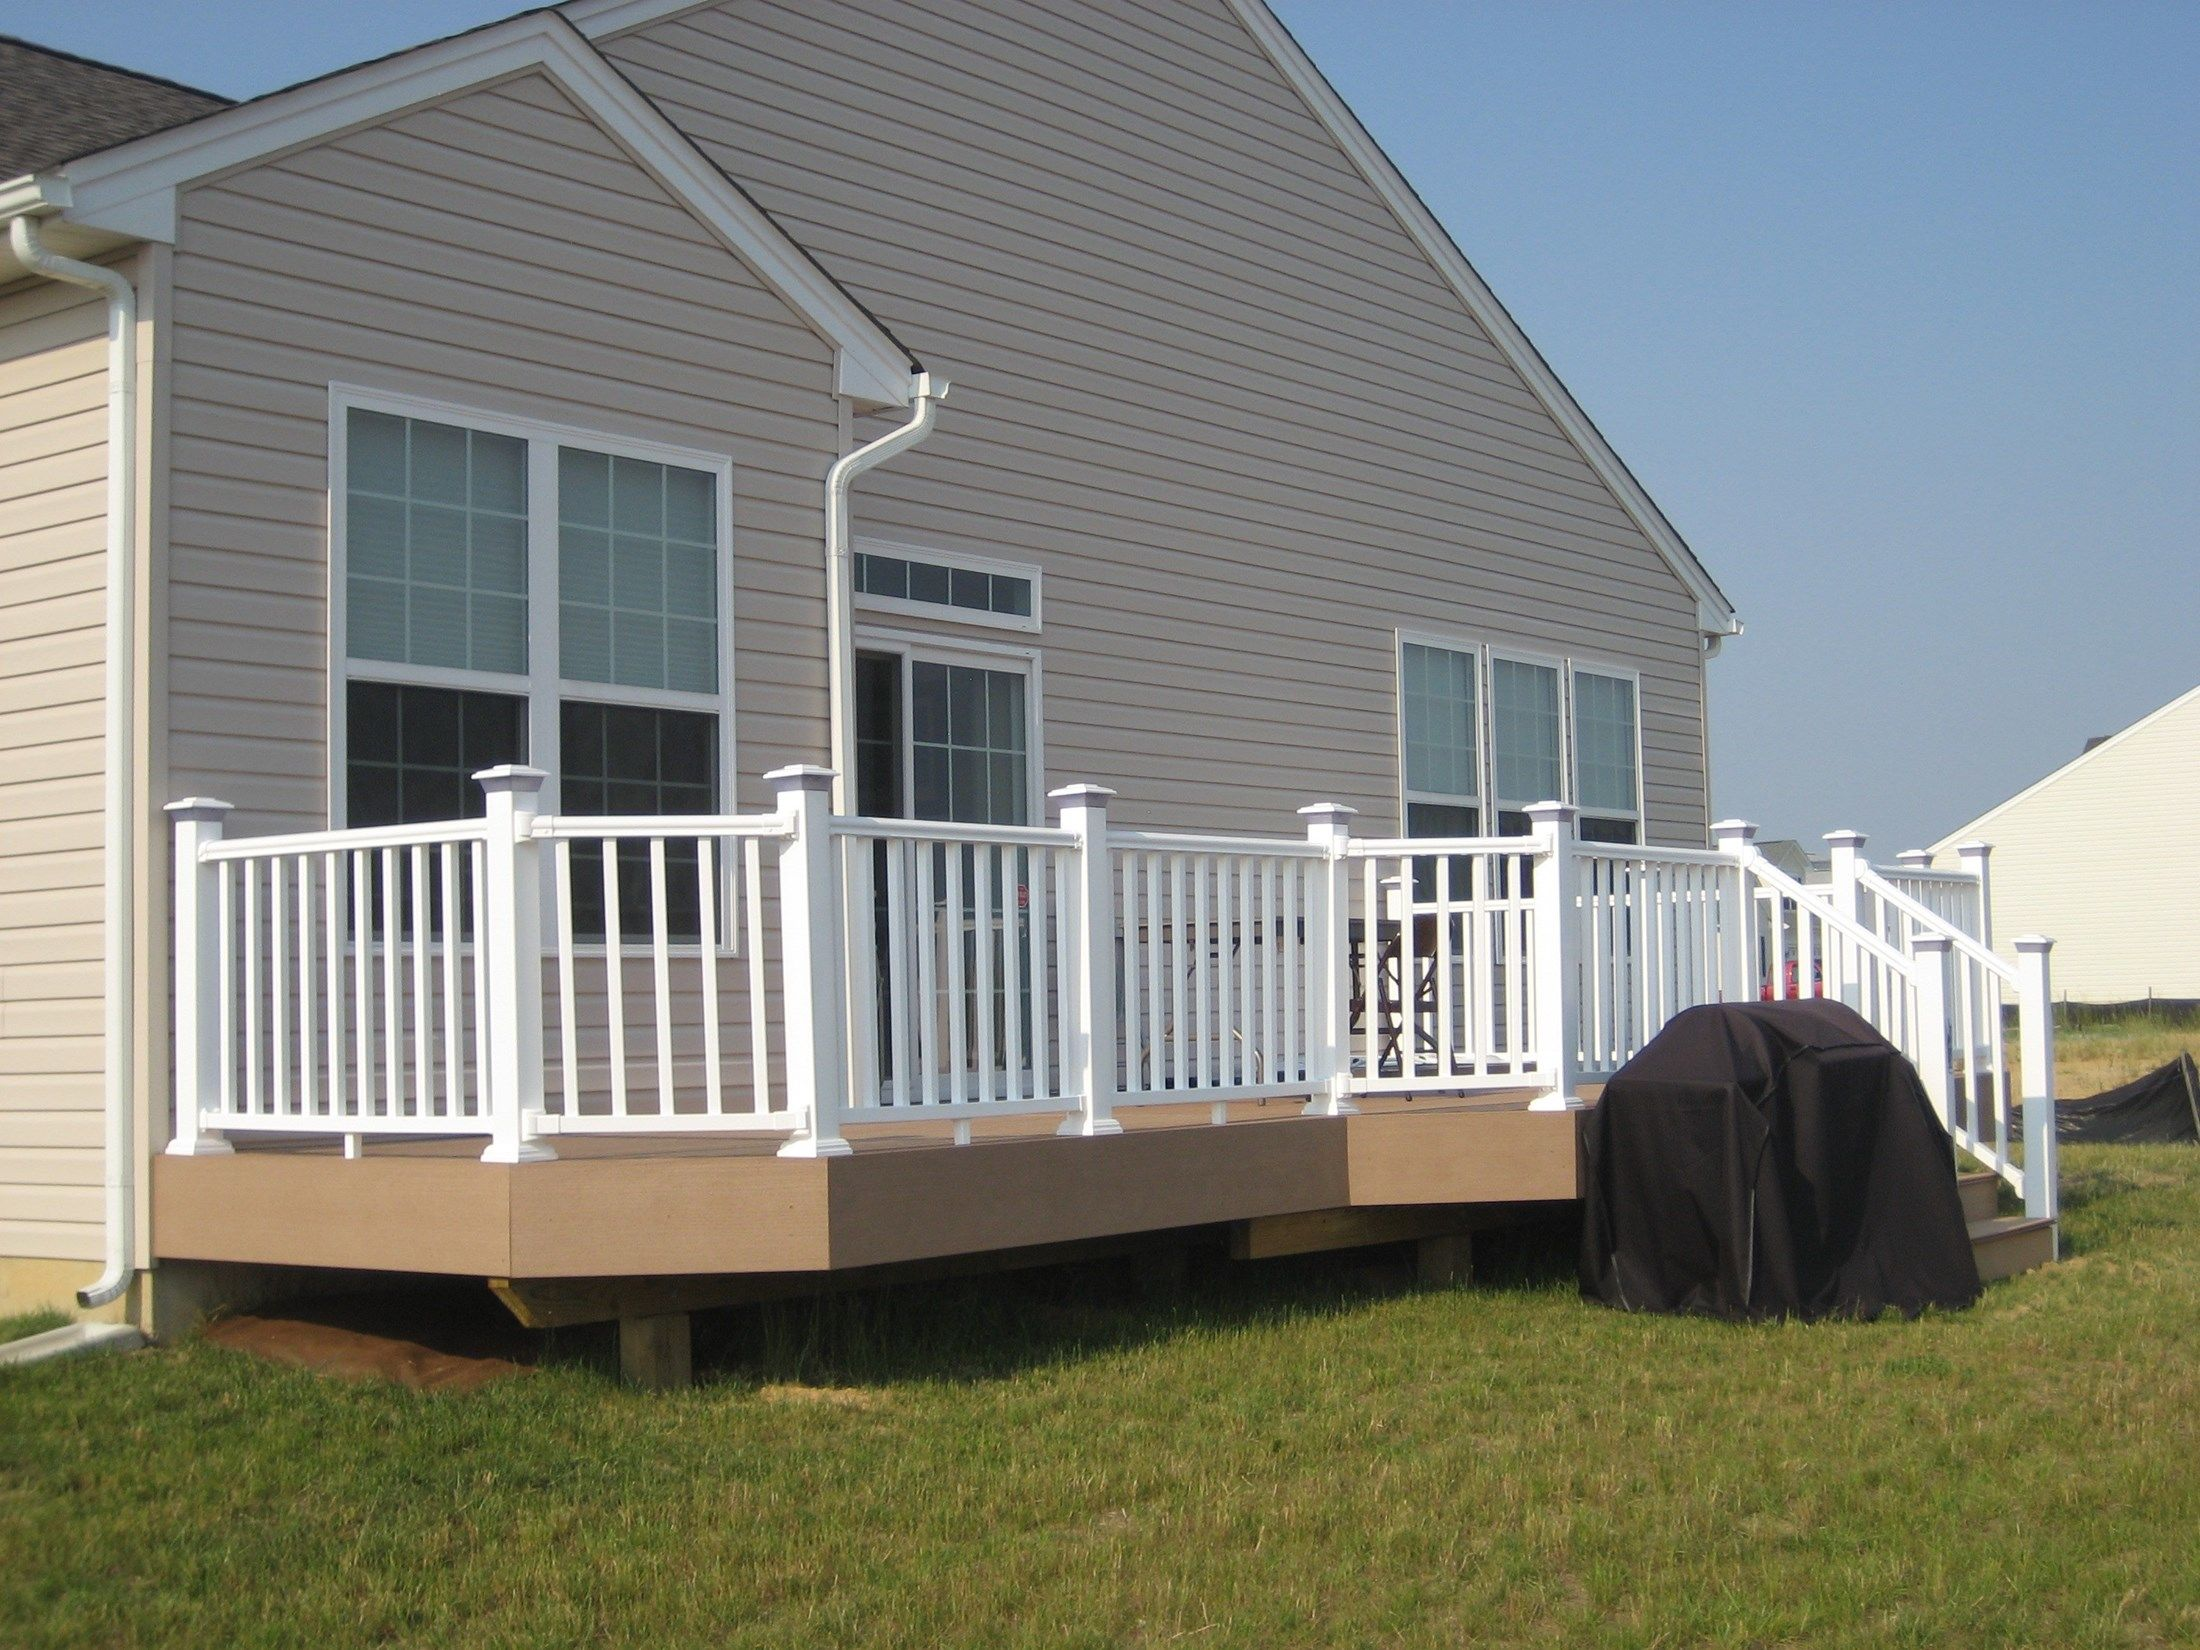 Composite Decks With PVC Vinyl Railing - Picture 6429